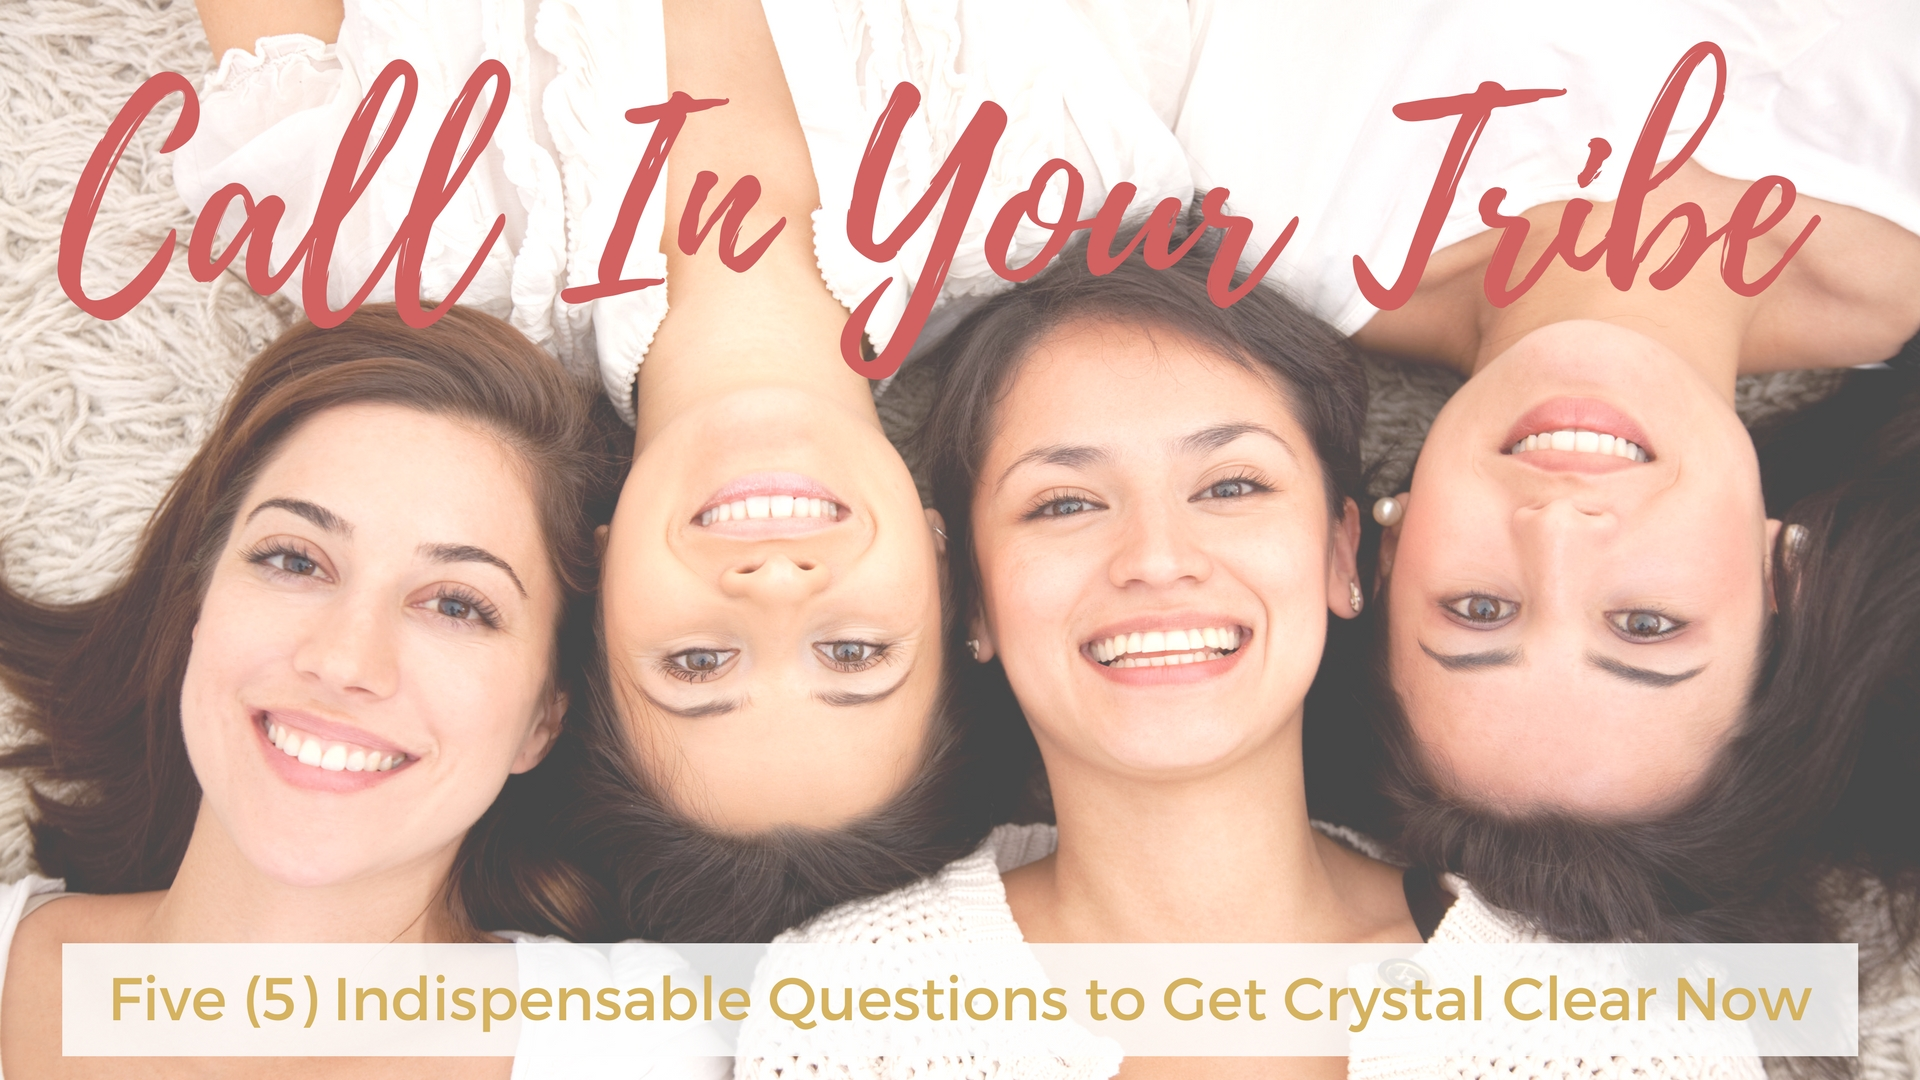 Free Download - Ideal Client Transformation Worksheet - 5 Indispensable Questions to Get Crystal Clear about who your target audience is // Buyer persona // customer avatar // ideal customer // niche target // dream client